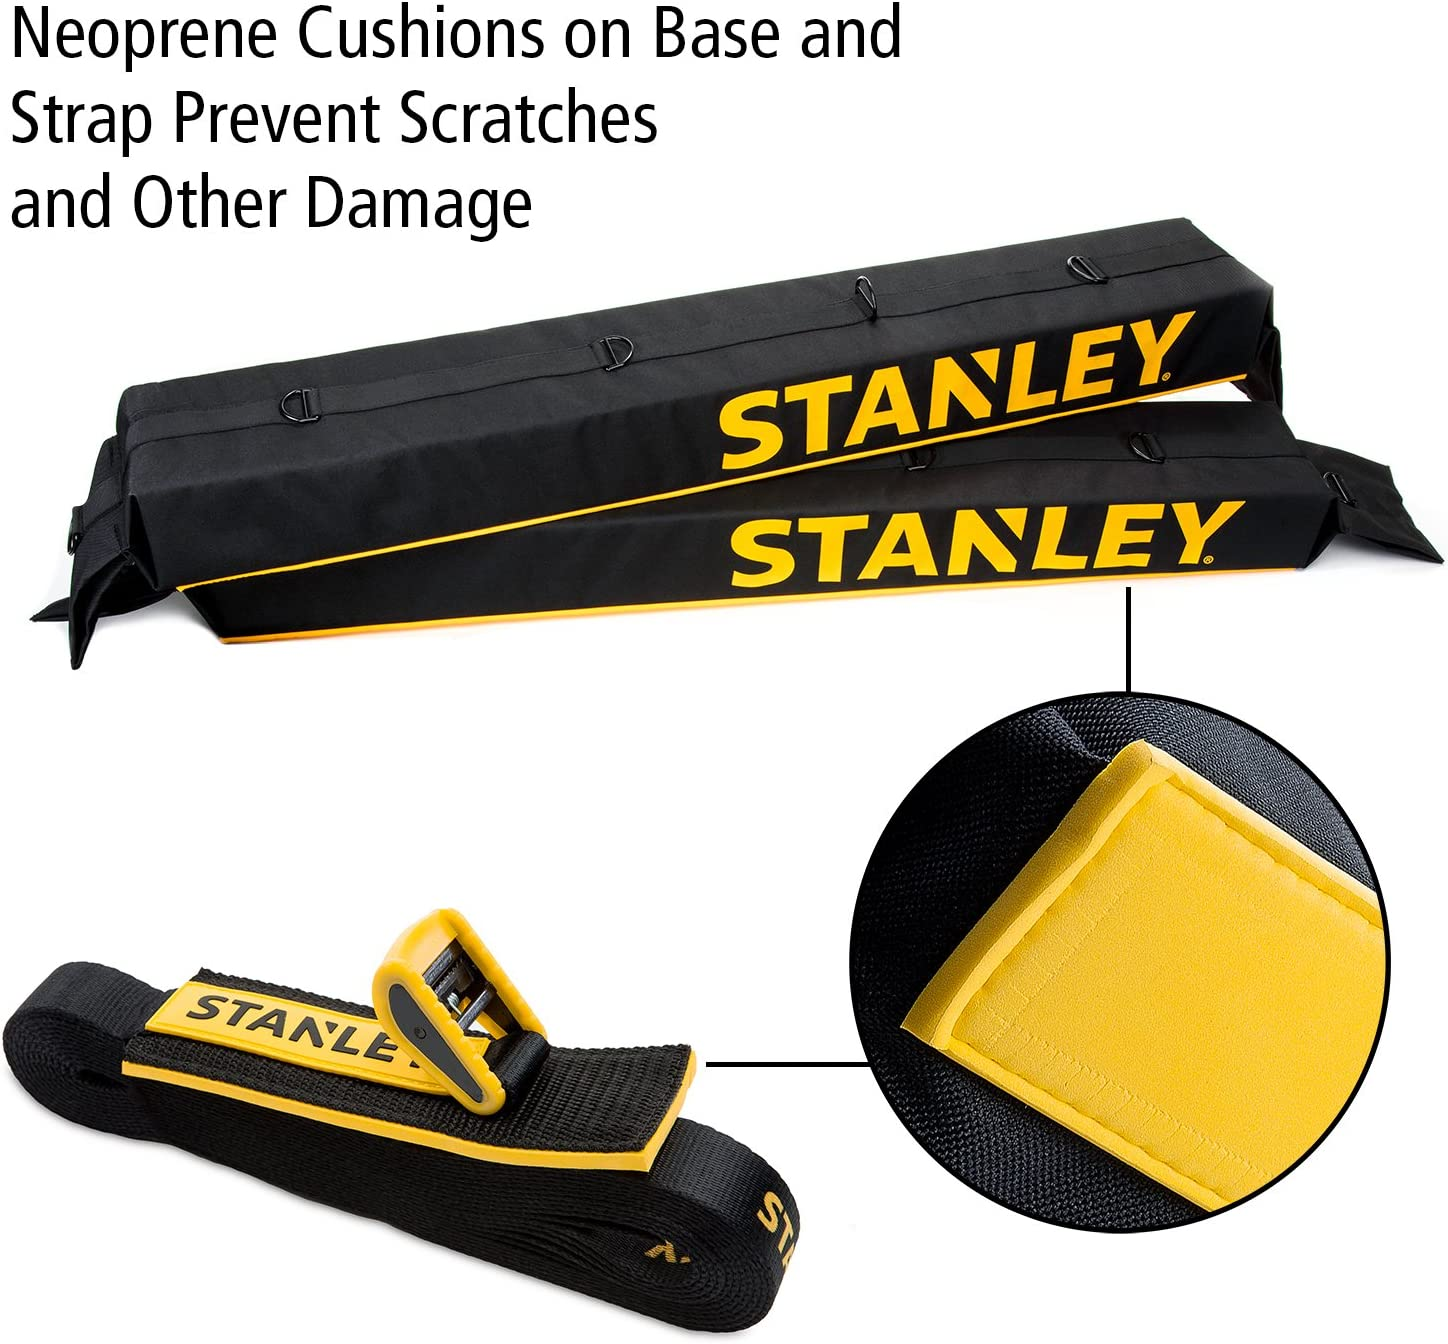 Includes 2 Heavy Duty Tie Down Straps Stanley Universal Car Roof Rack Pad /& Luggage Carrier System Anti Vibration Great for Transporting Kayak SUP Surfboard Lumber /& Other Long Items